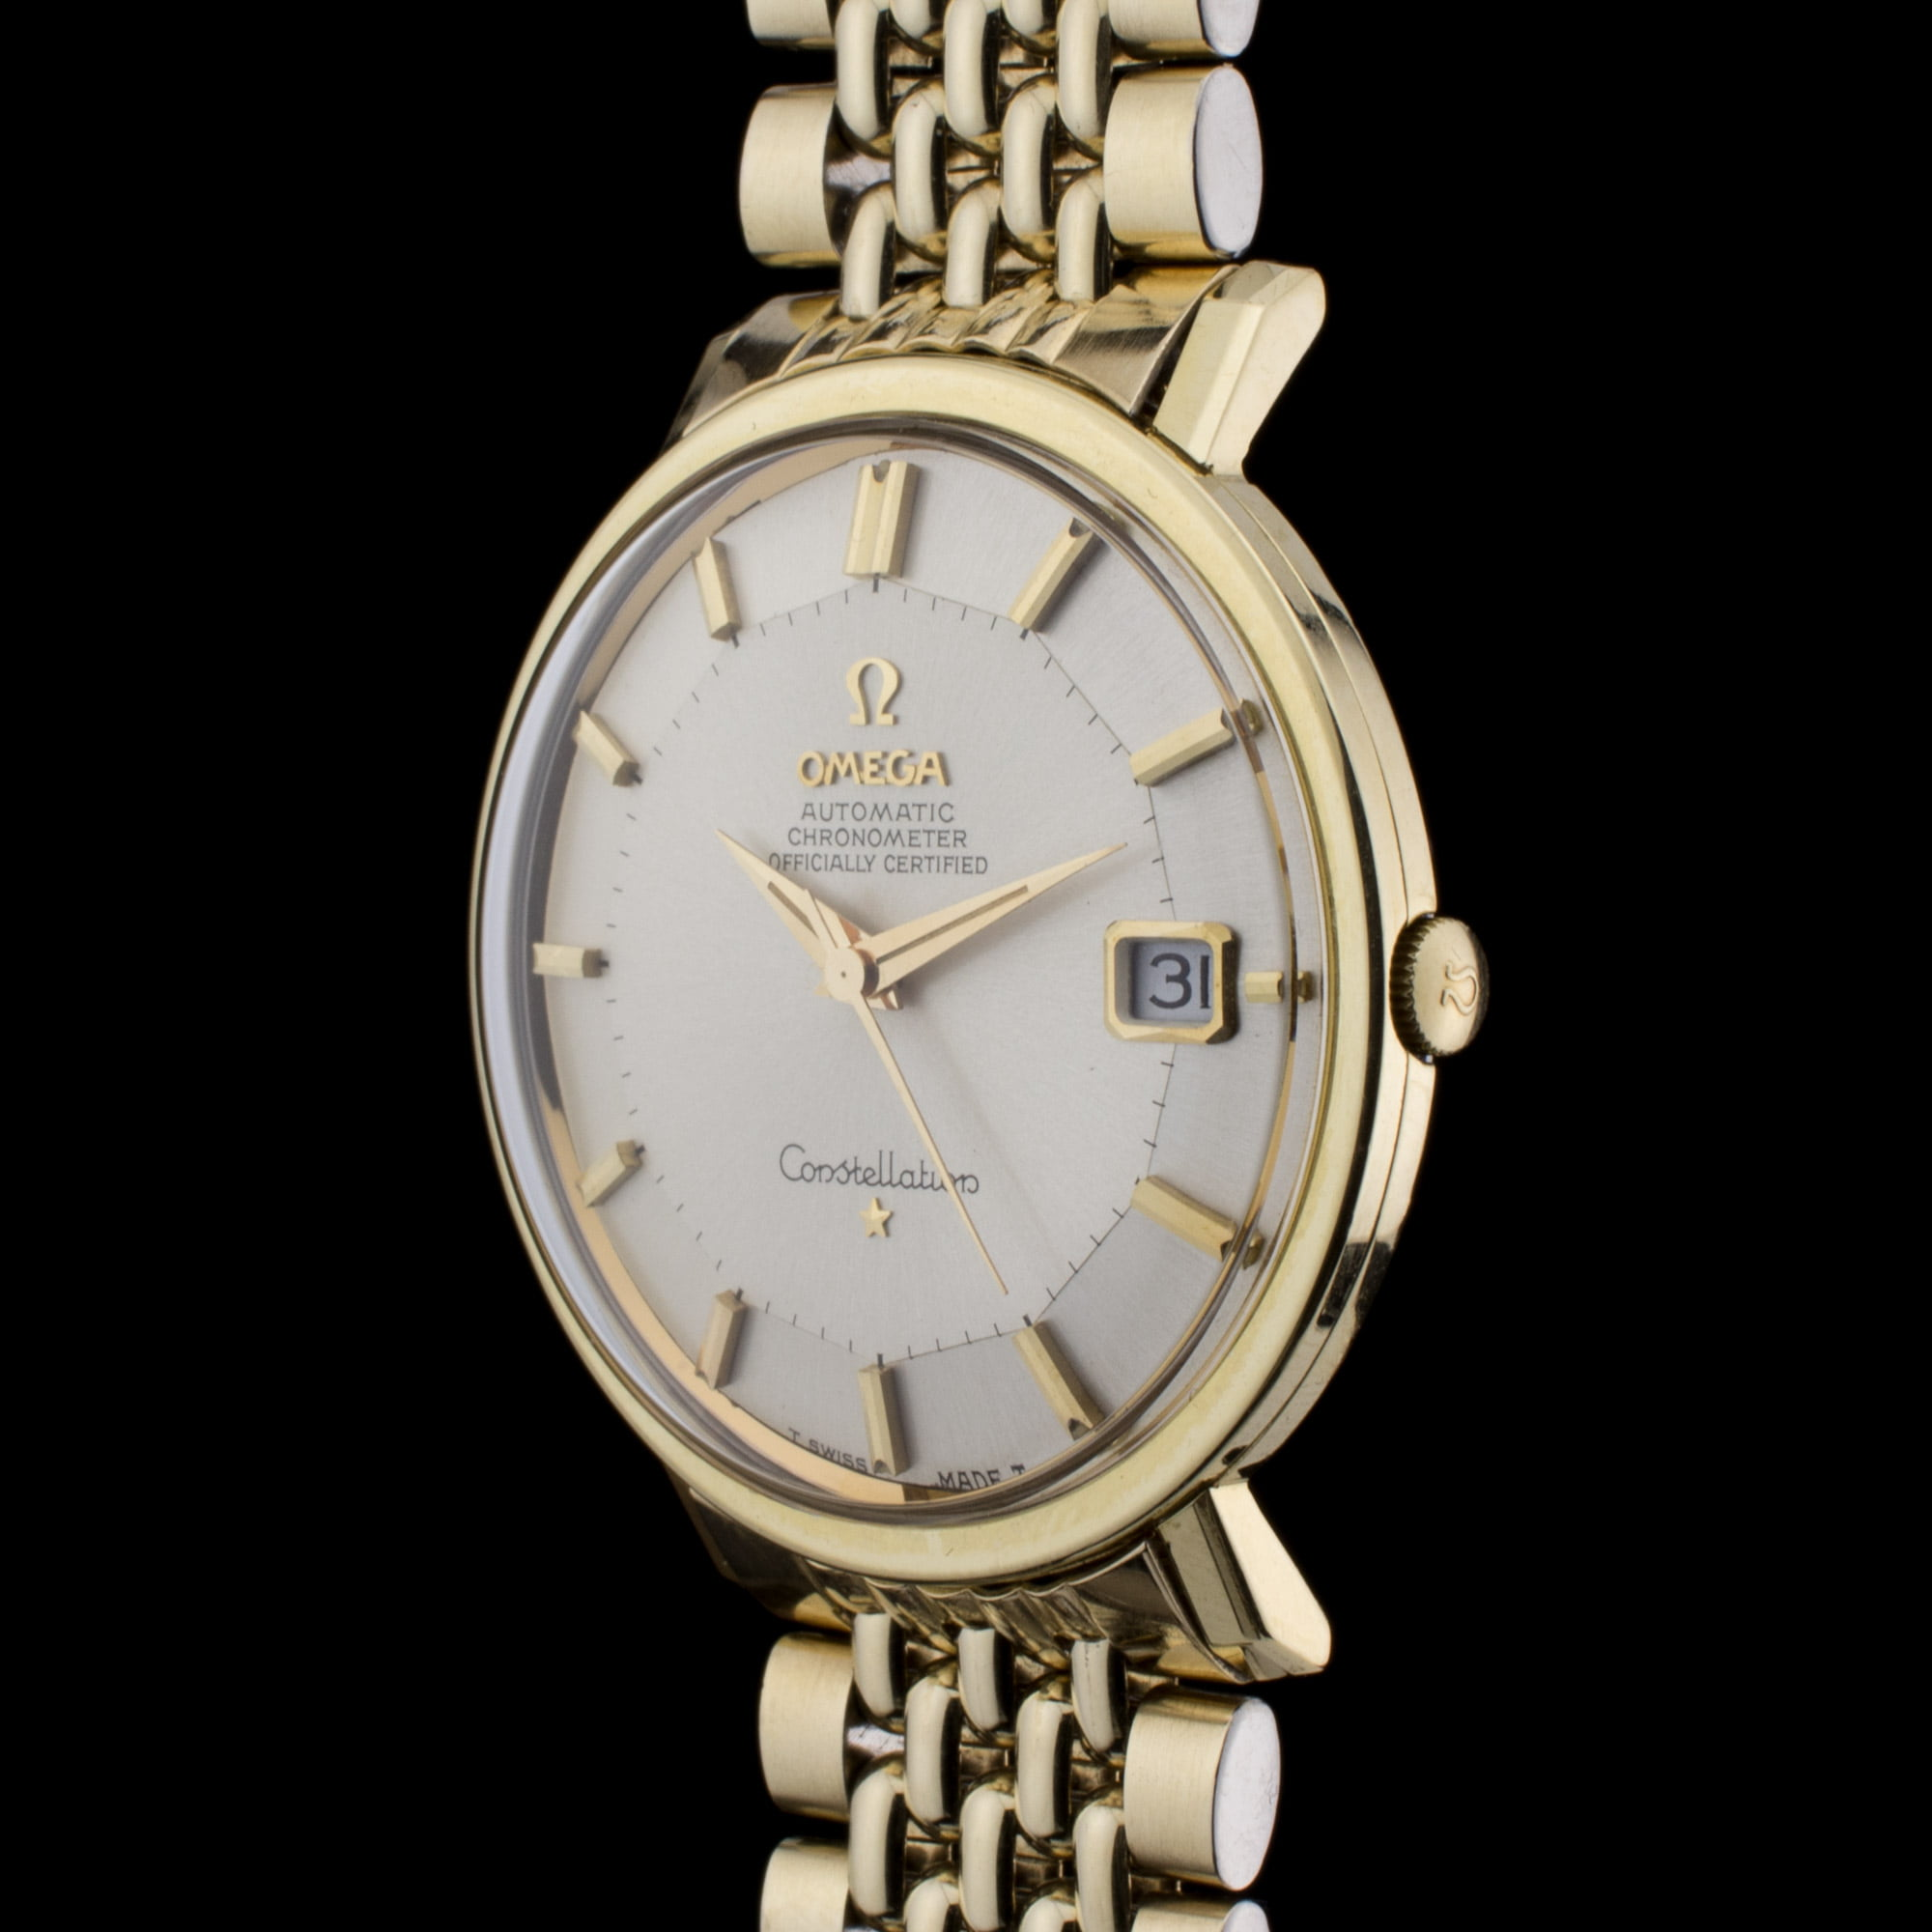 Omega constellation 39 pie pan 39 amsterdam vintage watches for Omega watch constellation